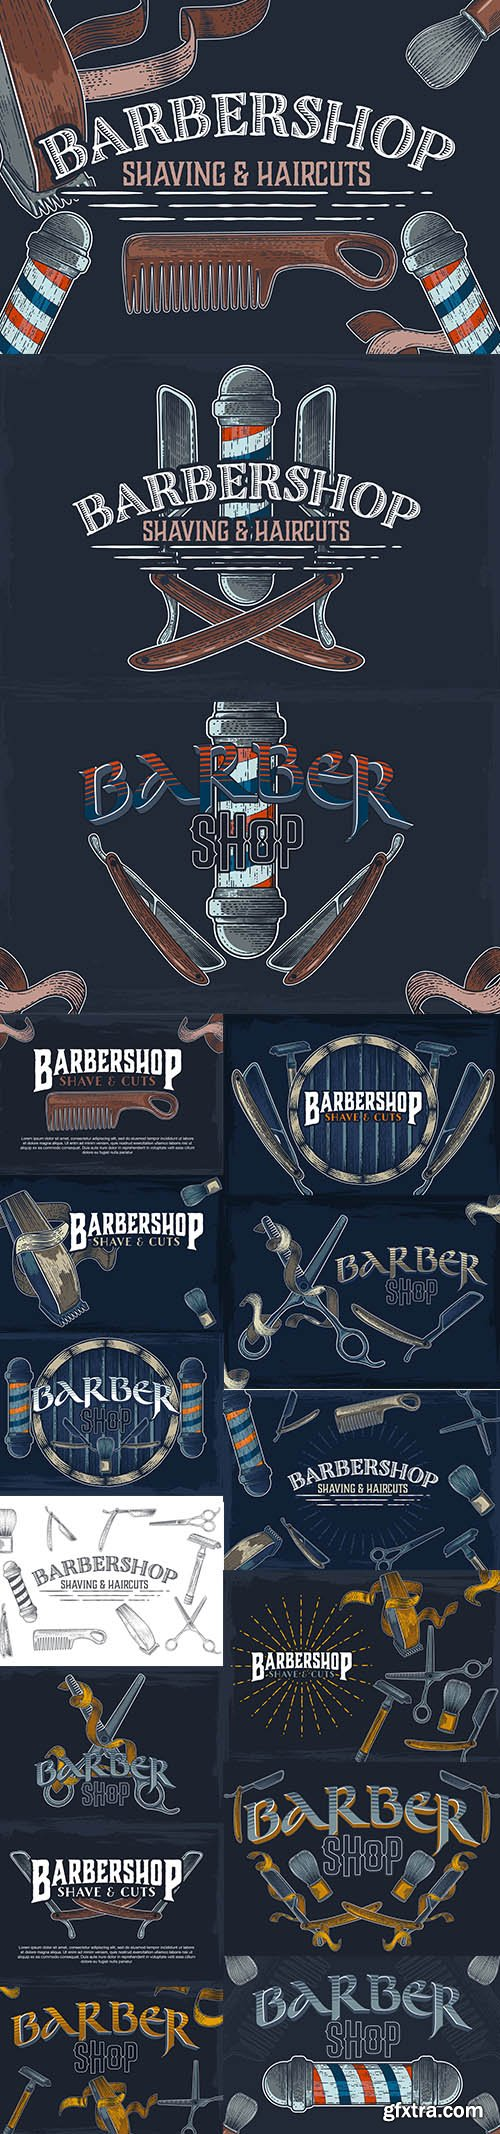 Hand-Drawn Vector Barber Shop Banners Premium Illustrations